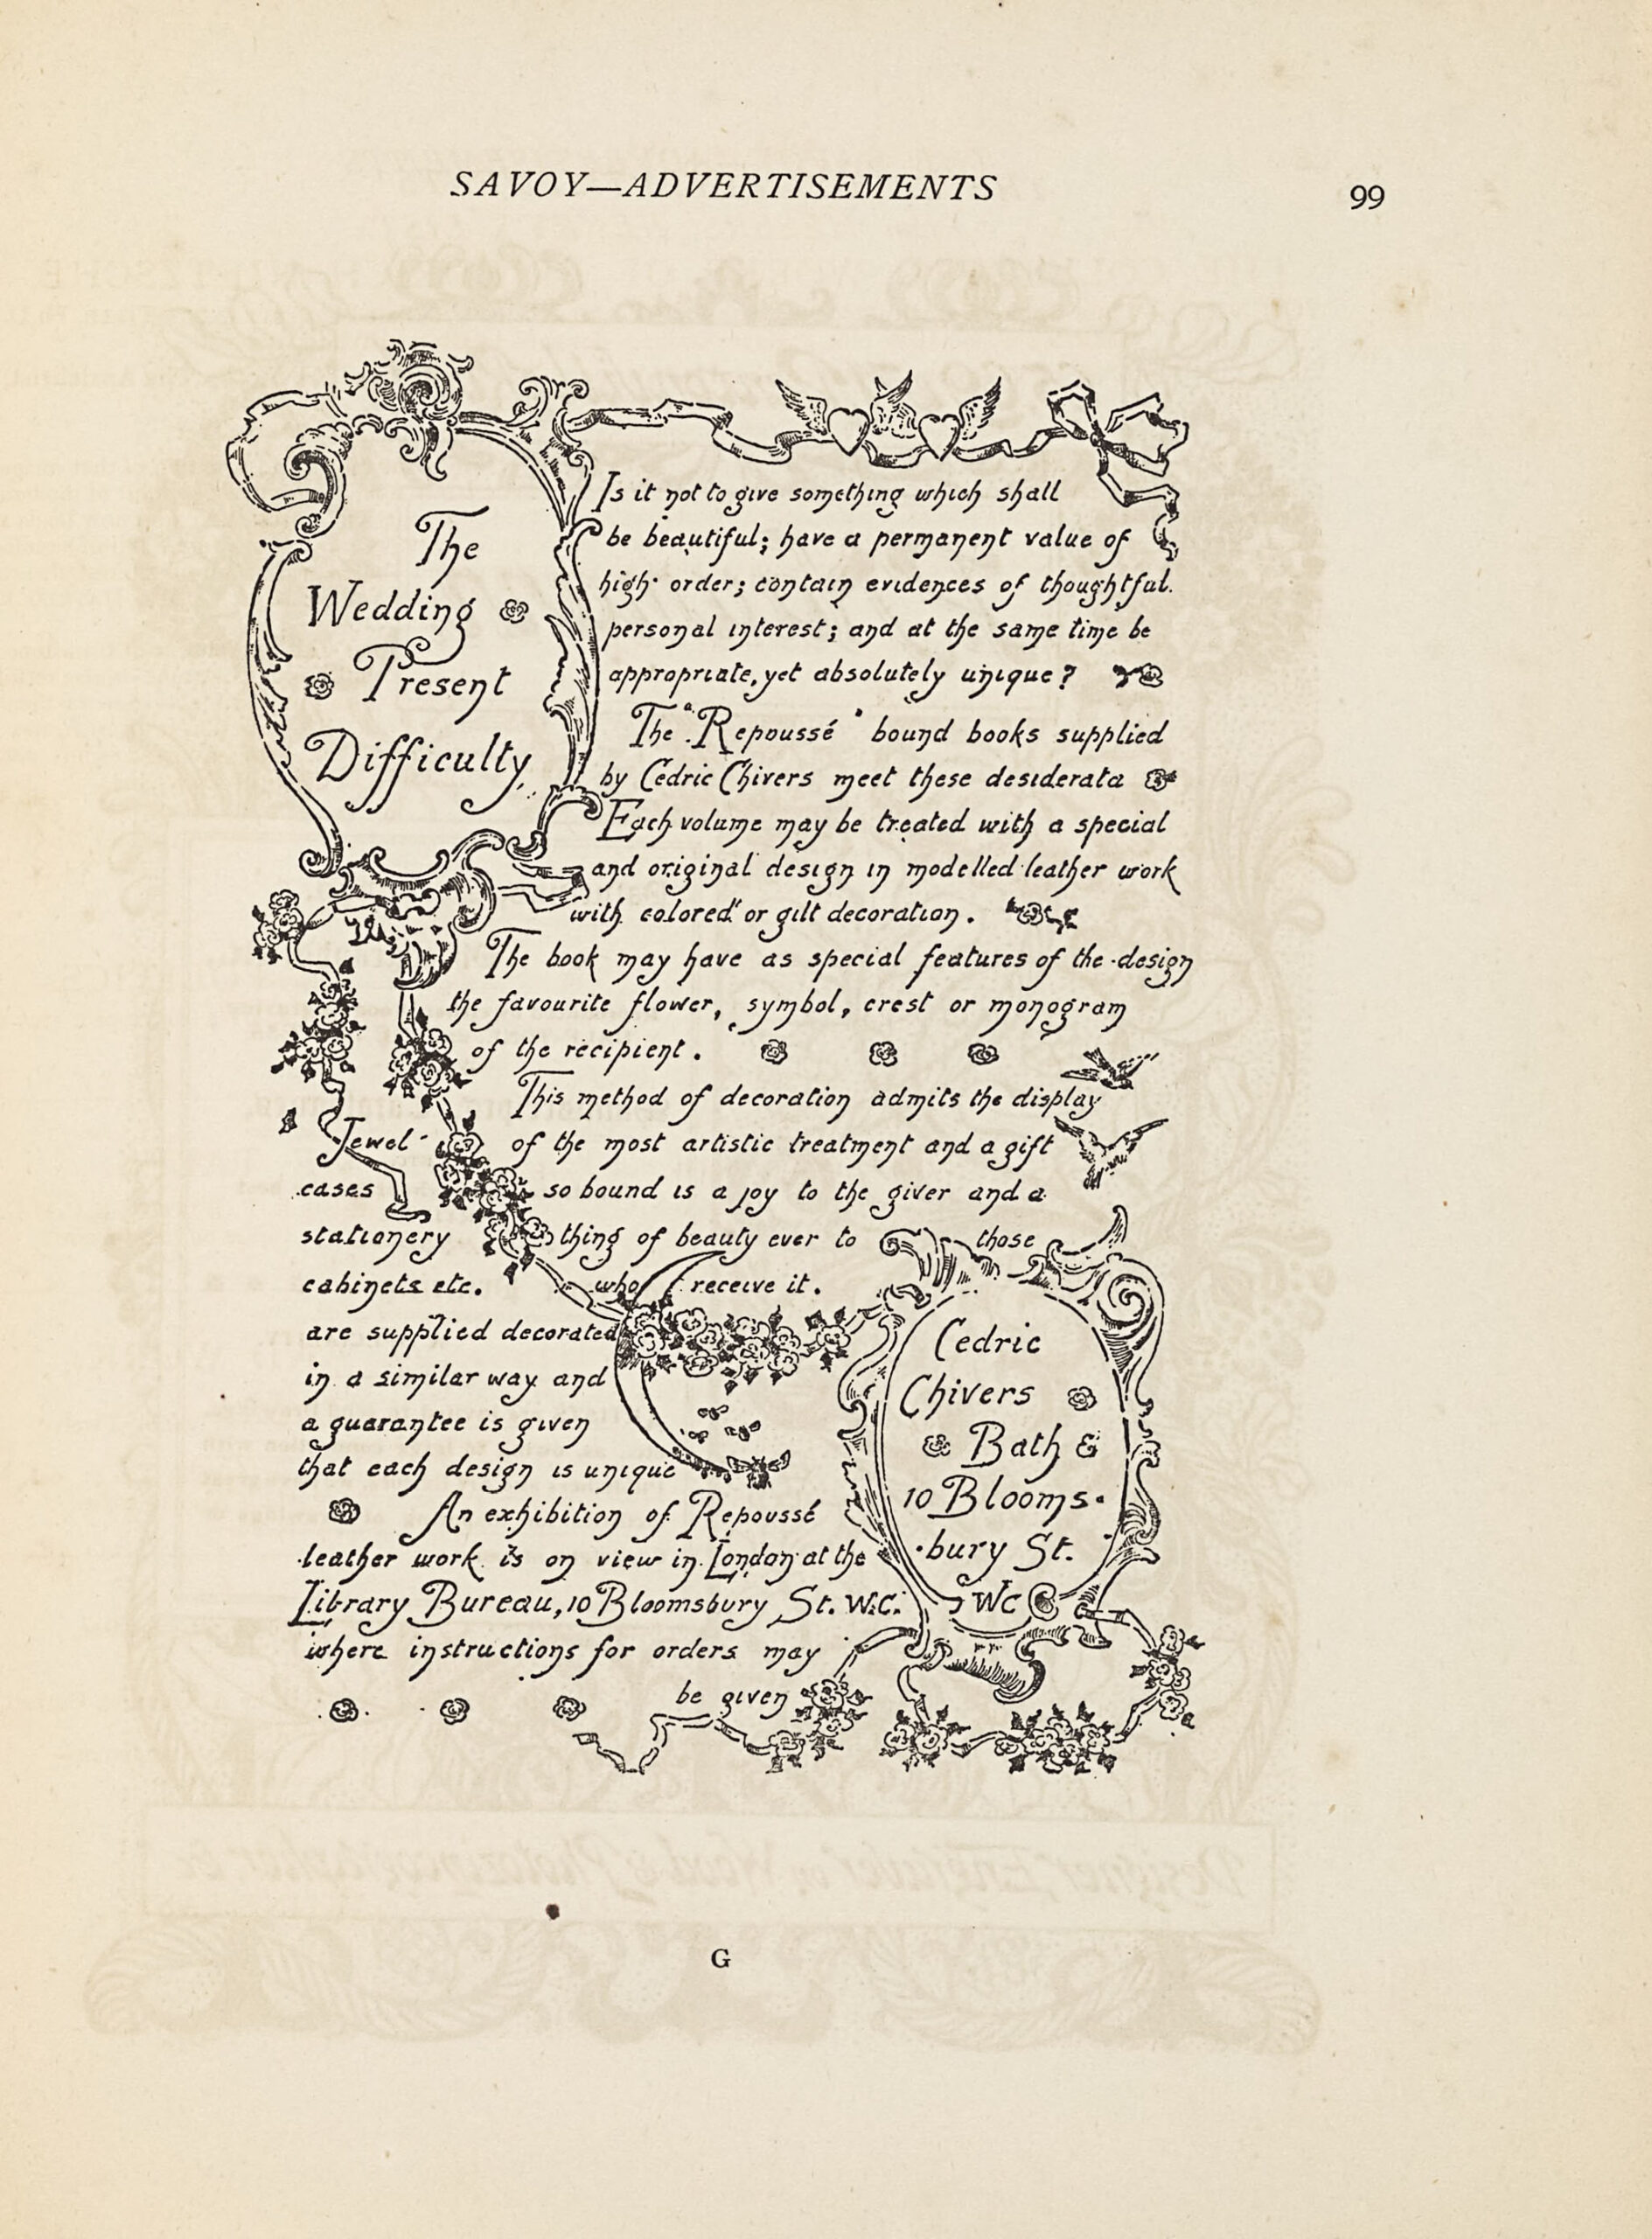 """The image is in portrait orientation and printed in black ink. The image is an advertisement titled """"The Wedding Present Difficulty"""" and shows two sections of advertising copy in addition to the title and advertiser's contact information, with flowers and flourishes dividing up the sections. The advertisement's title is located in the top left corner of the page, contained within an oval cartouche composed of flourishing ribbons and leavesof flourishing designs, with a rose on either side of the text. These flourishing designs extend out from the top of the oval to frame the image along the top edge and from the bottom of the oval to divide the body text in a curving diagonal line extending from the top left of the image to the bottom right. The diagonal line connects the oval cartouche containing the advertisement's title to the oval cartouche containing the advertiser's contact information. These flourishing designs are decorated with winged hearts along the top and several bunches of roses, a crescent moon, and bumblebees along the diagonal. The upper section of the image contains the text: """"Is it not to give something which shall be beautiful; have a permanent value of high order; contain evidences of thoughtful personal interest; and at the same time be appropriate, yet absolutely unique? The """"Repoussé"""" bound books supplied by Cedric Chivers meet these desiderata. Each volume may be treated with a special and original design in modelled leather work with colored or gilt decoration. The book may have as special features of the design the favourite flower, symbol, crest or monogram of the recipient. This method of decoration admits the display of the most artistic treatment and a gift so bound is a joy to the giver and a thing of beauty ever to those who receive it."""" This section of text is decorated throughout with roses, fleurons, and doves. The lower section of the image, below the diagonal line, contains the text: """"Jewel-cases, stationery, cabinets, etc. are """